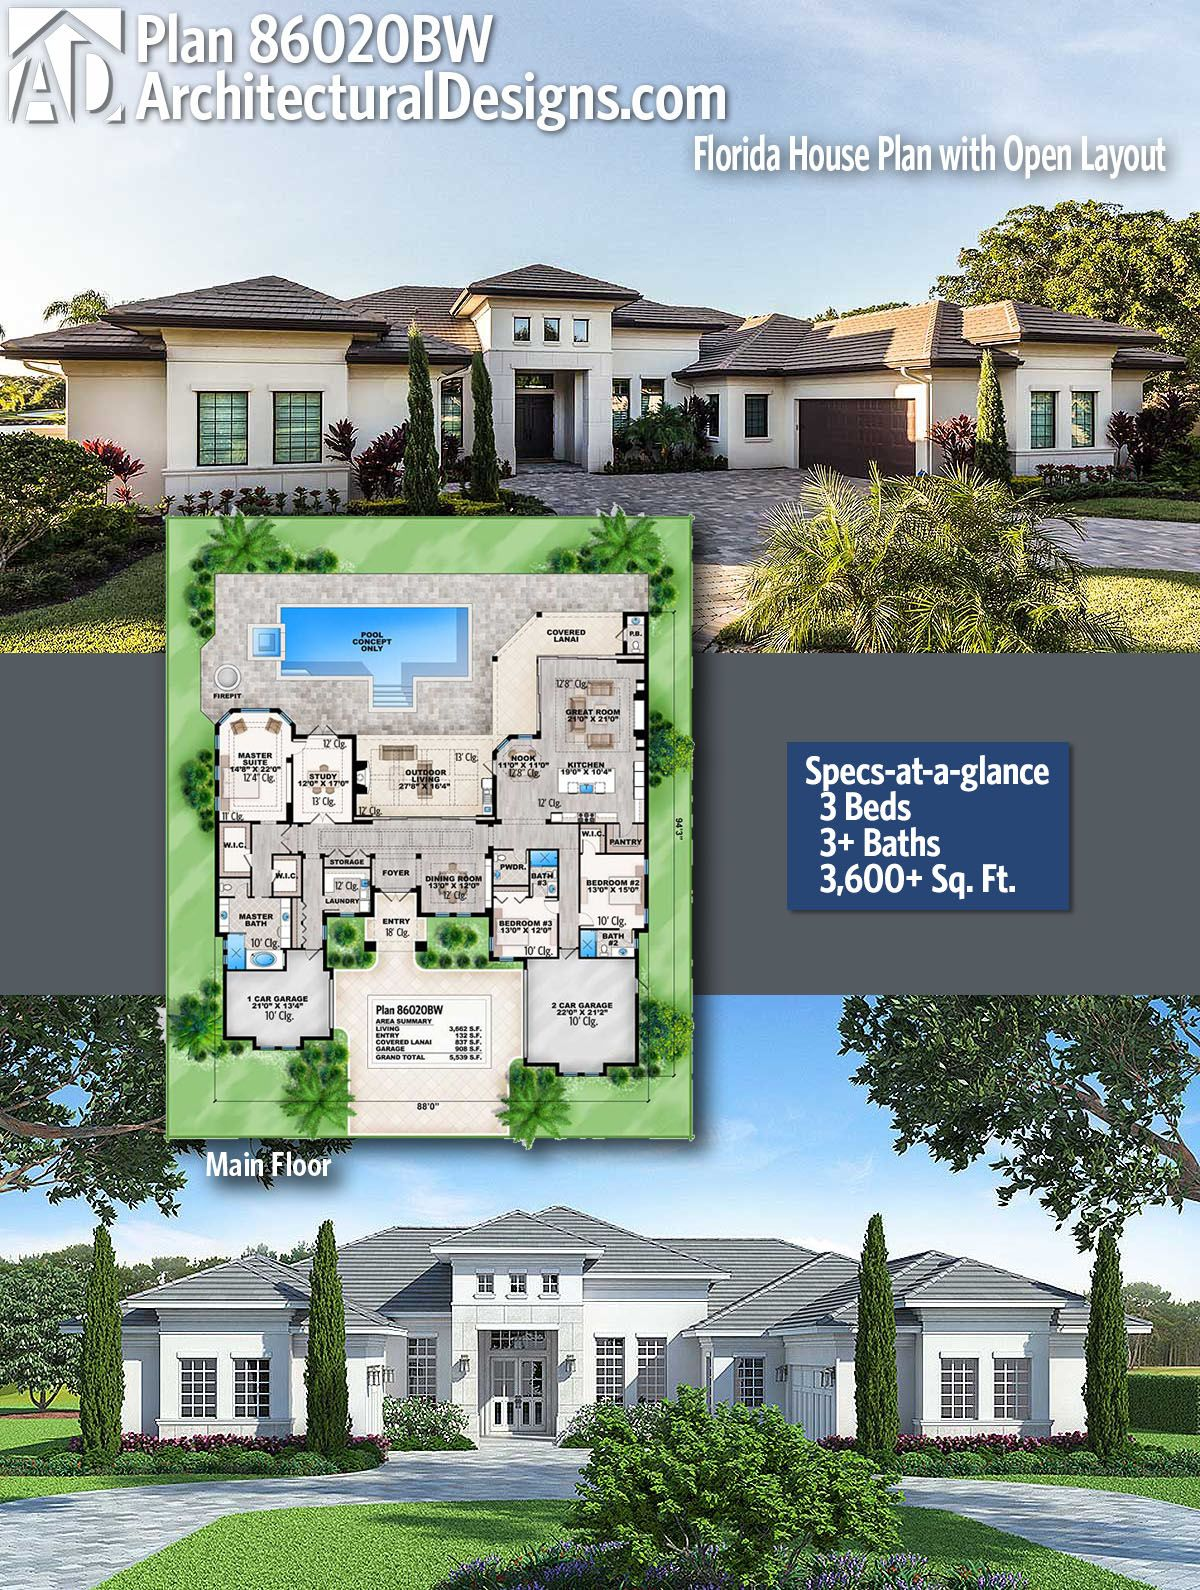 Plan 86020bw Florida House Plan With Open Layout Florida House Plans Architectural Design House Plans Modern House Plans